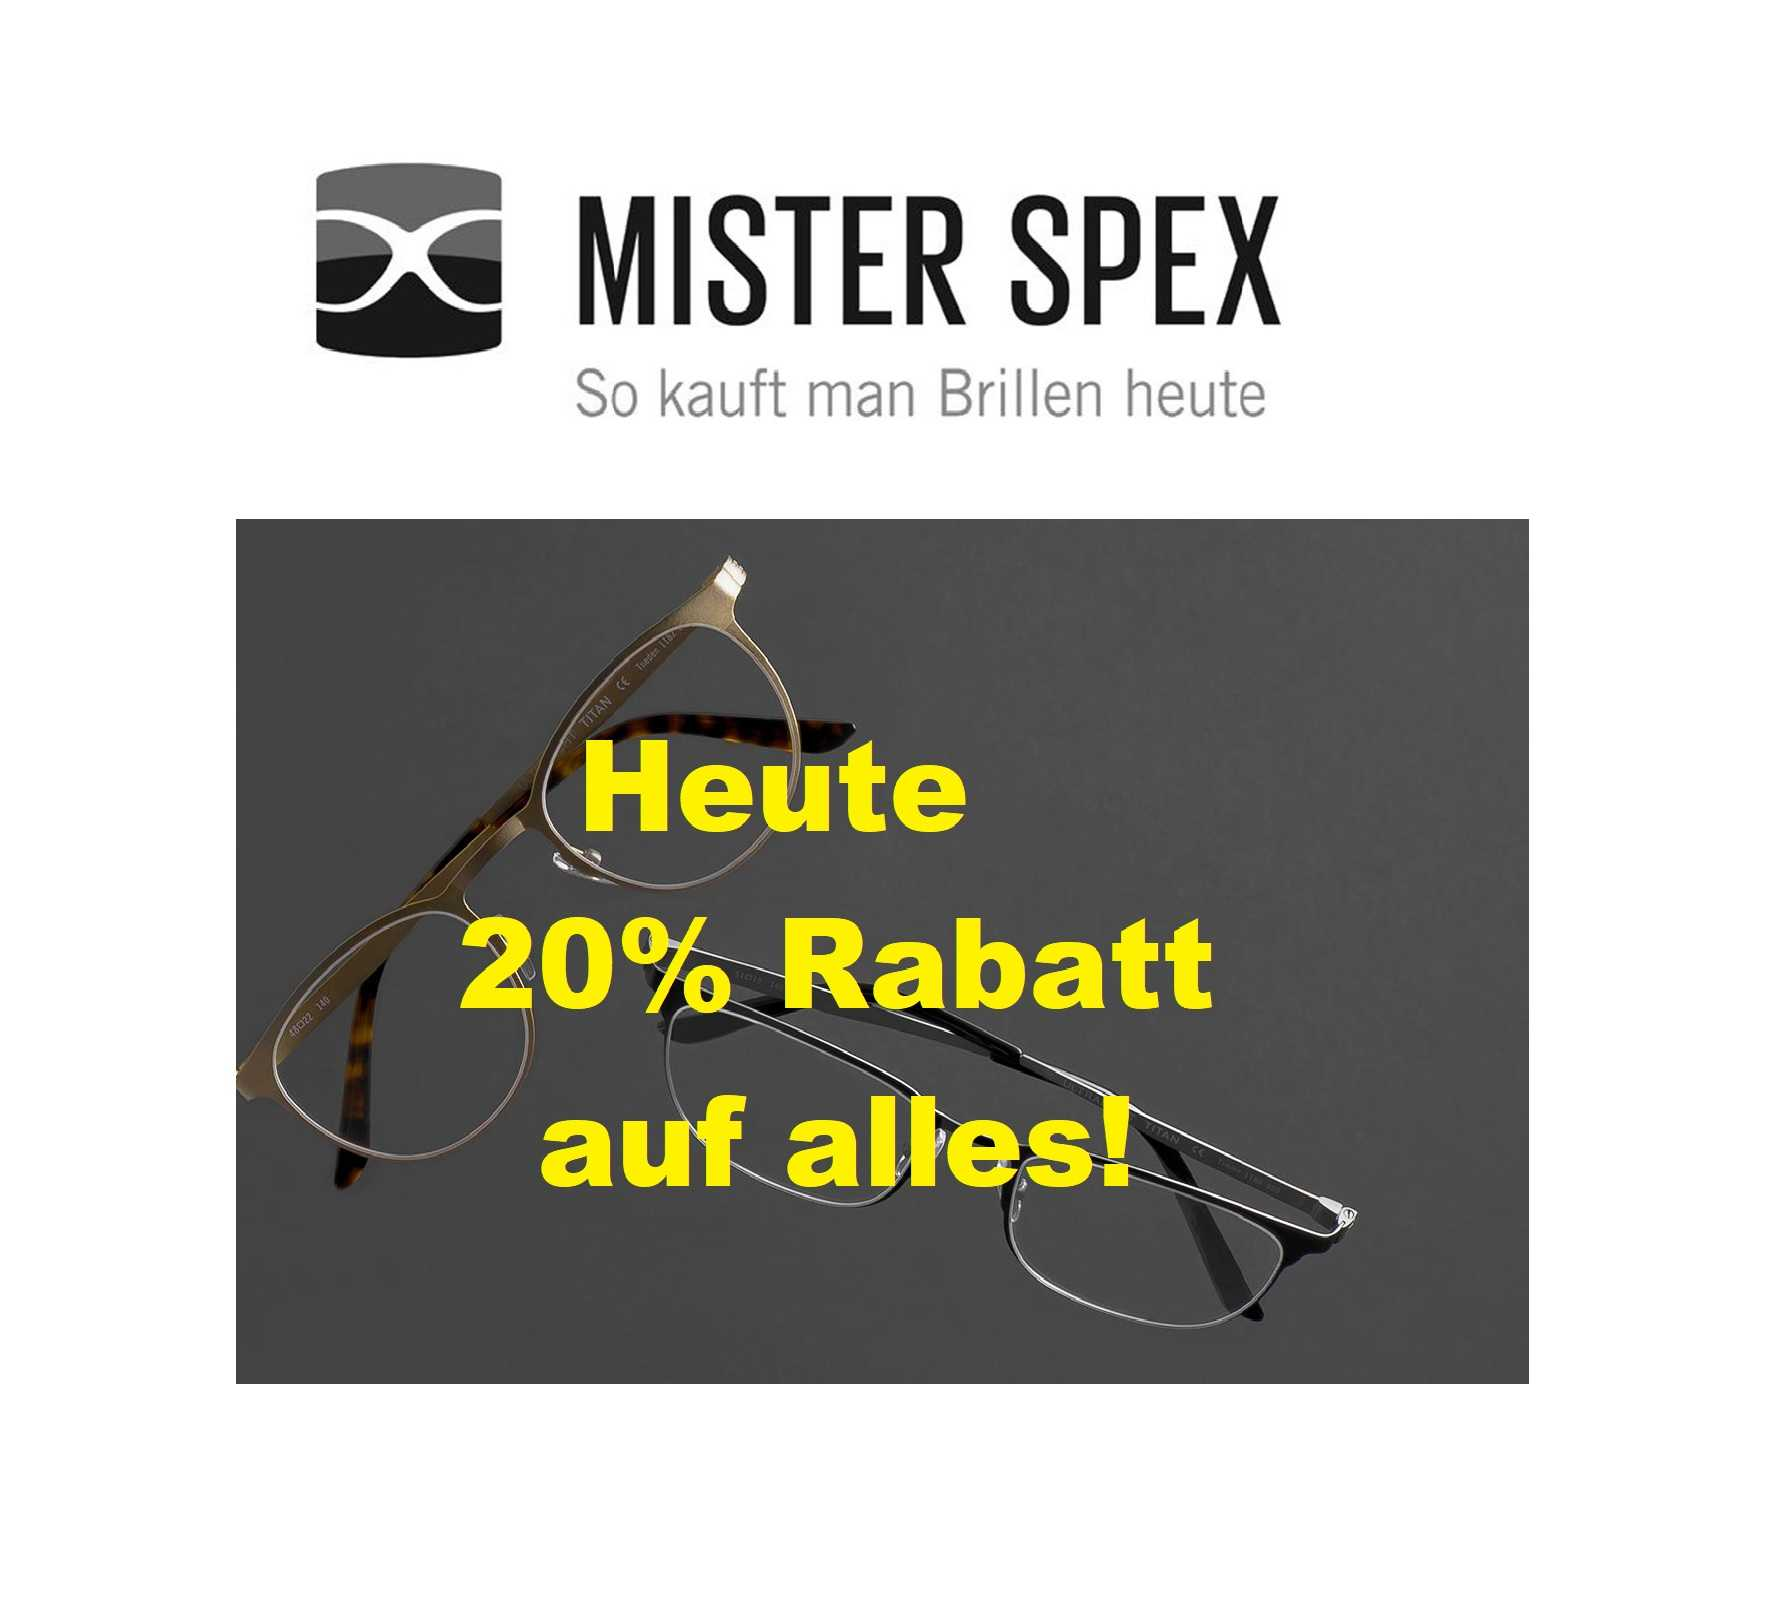 mister spex 20 rabatt auf alles mytopdeals. Black Bedroom Furniture Sets. Home Design Ideas